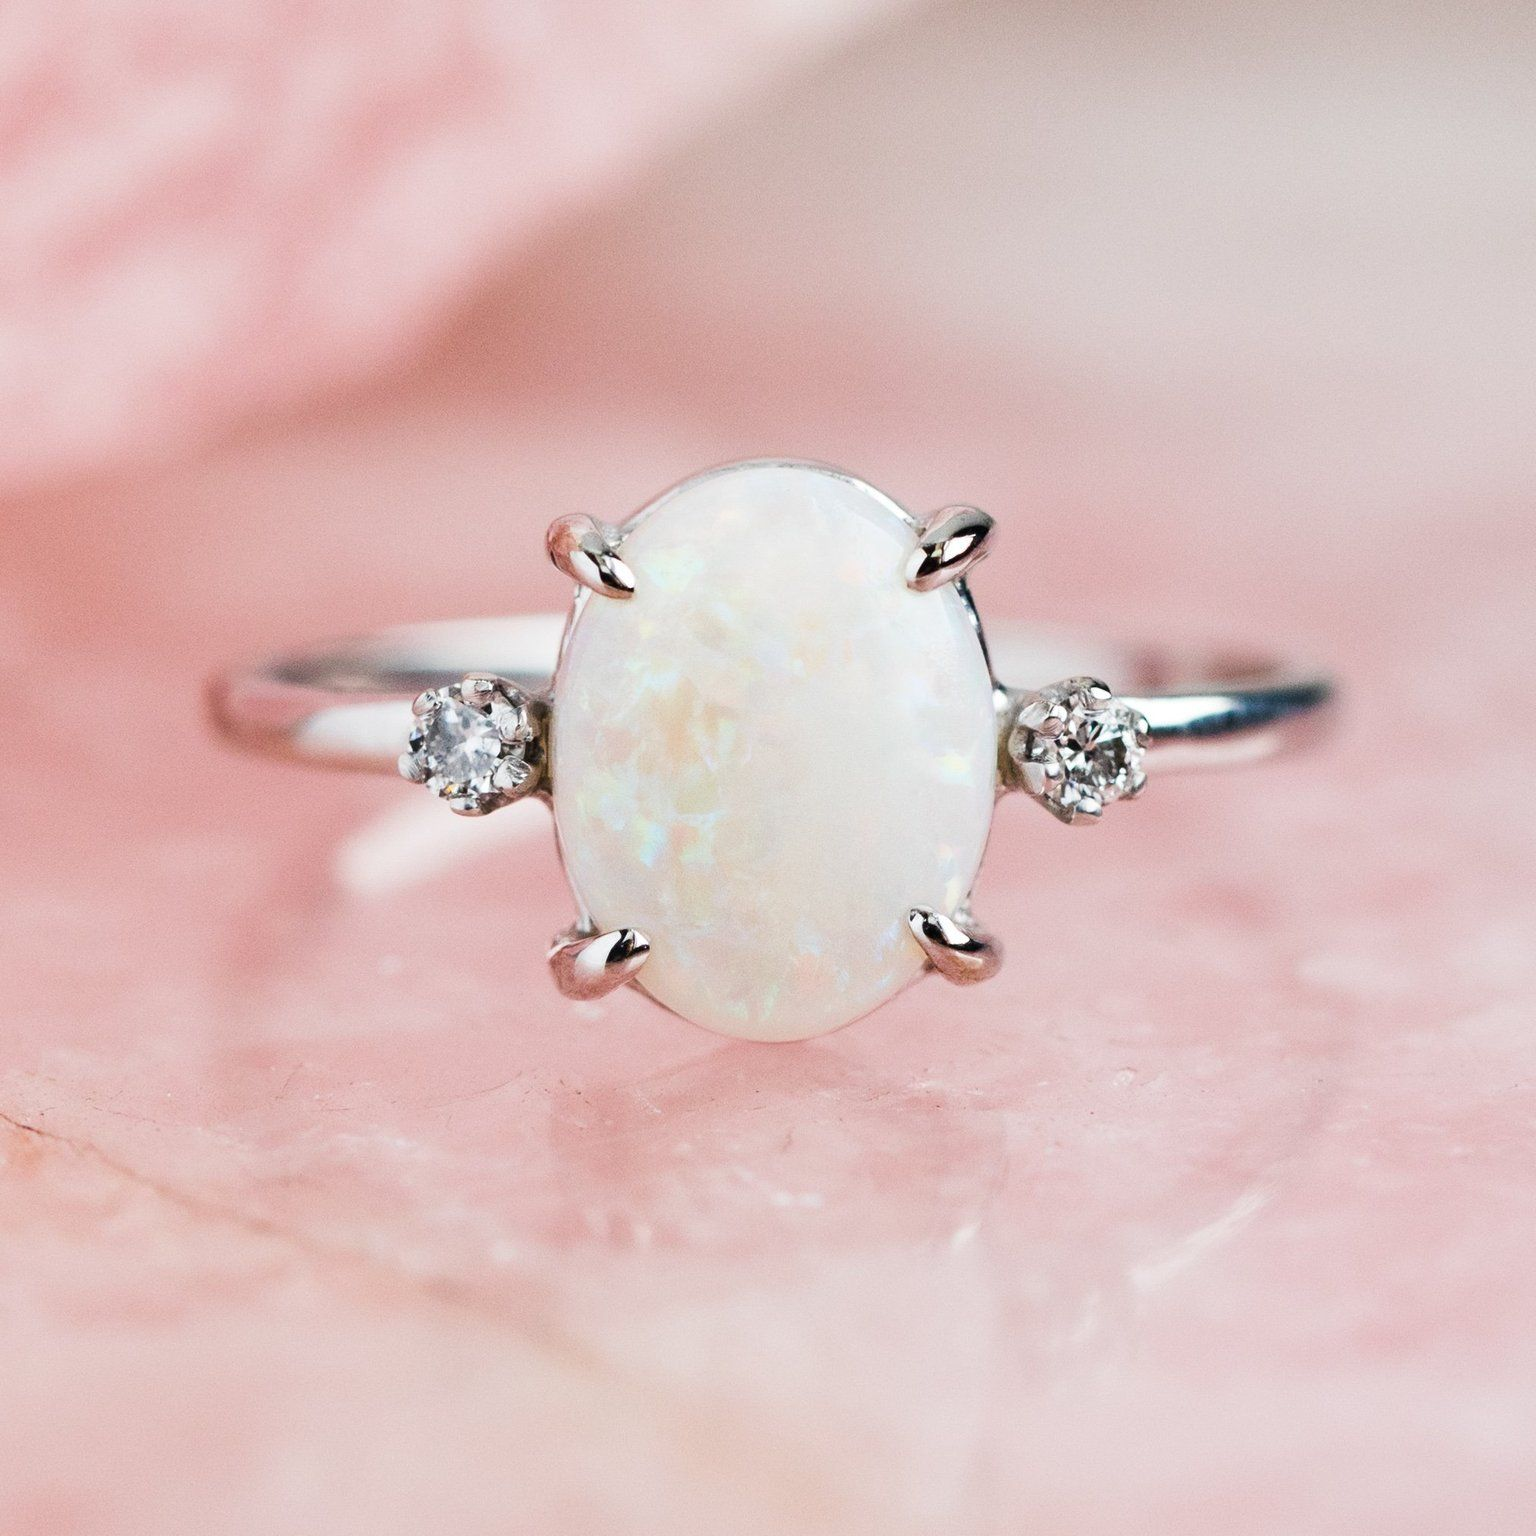 Fairy Princess Ring with Opal, Sapphires & Diamond in 2020